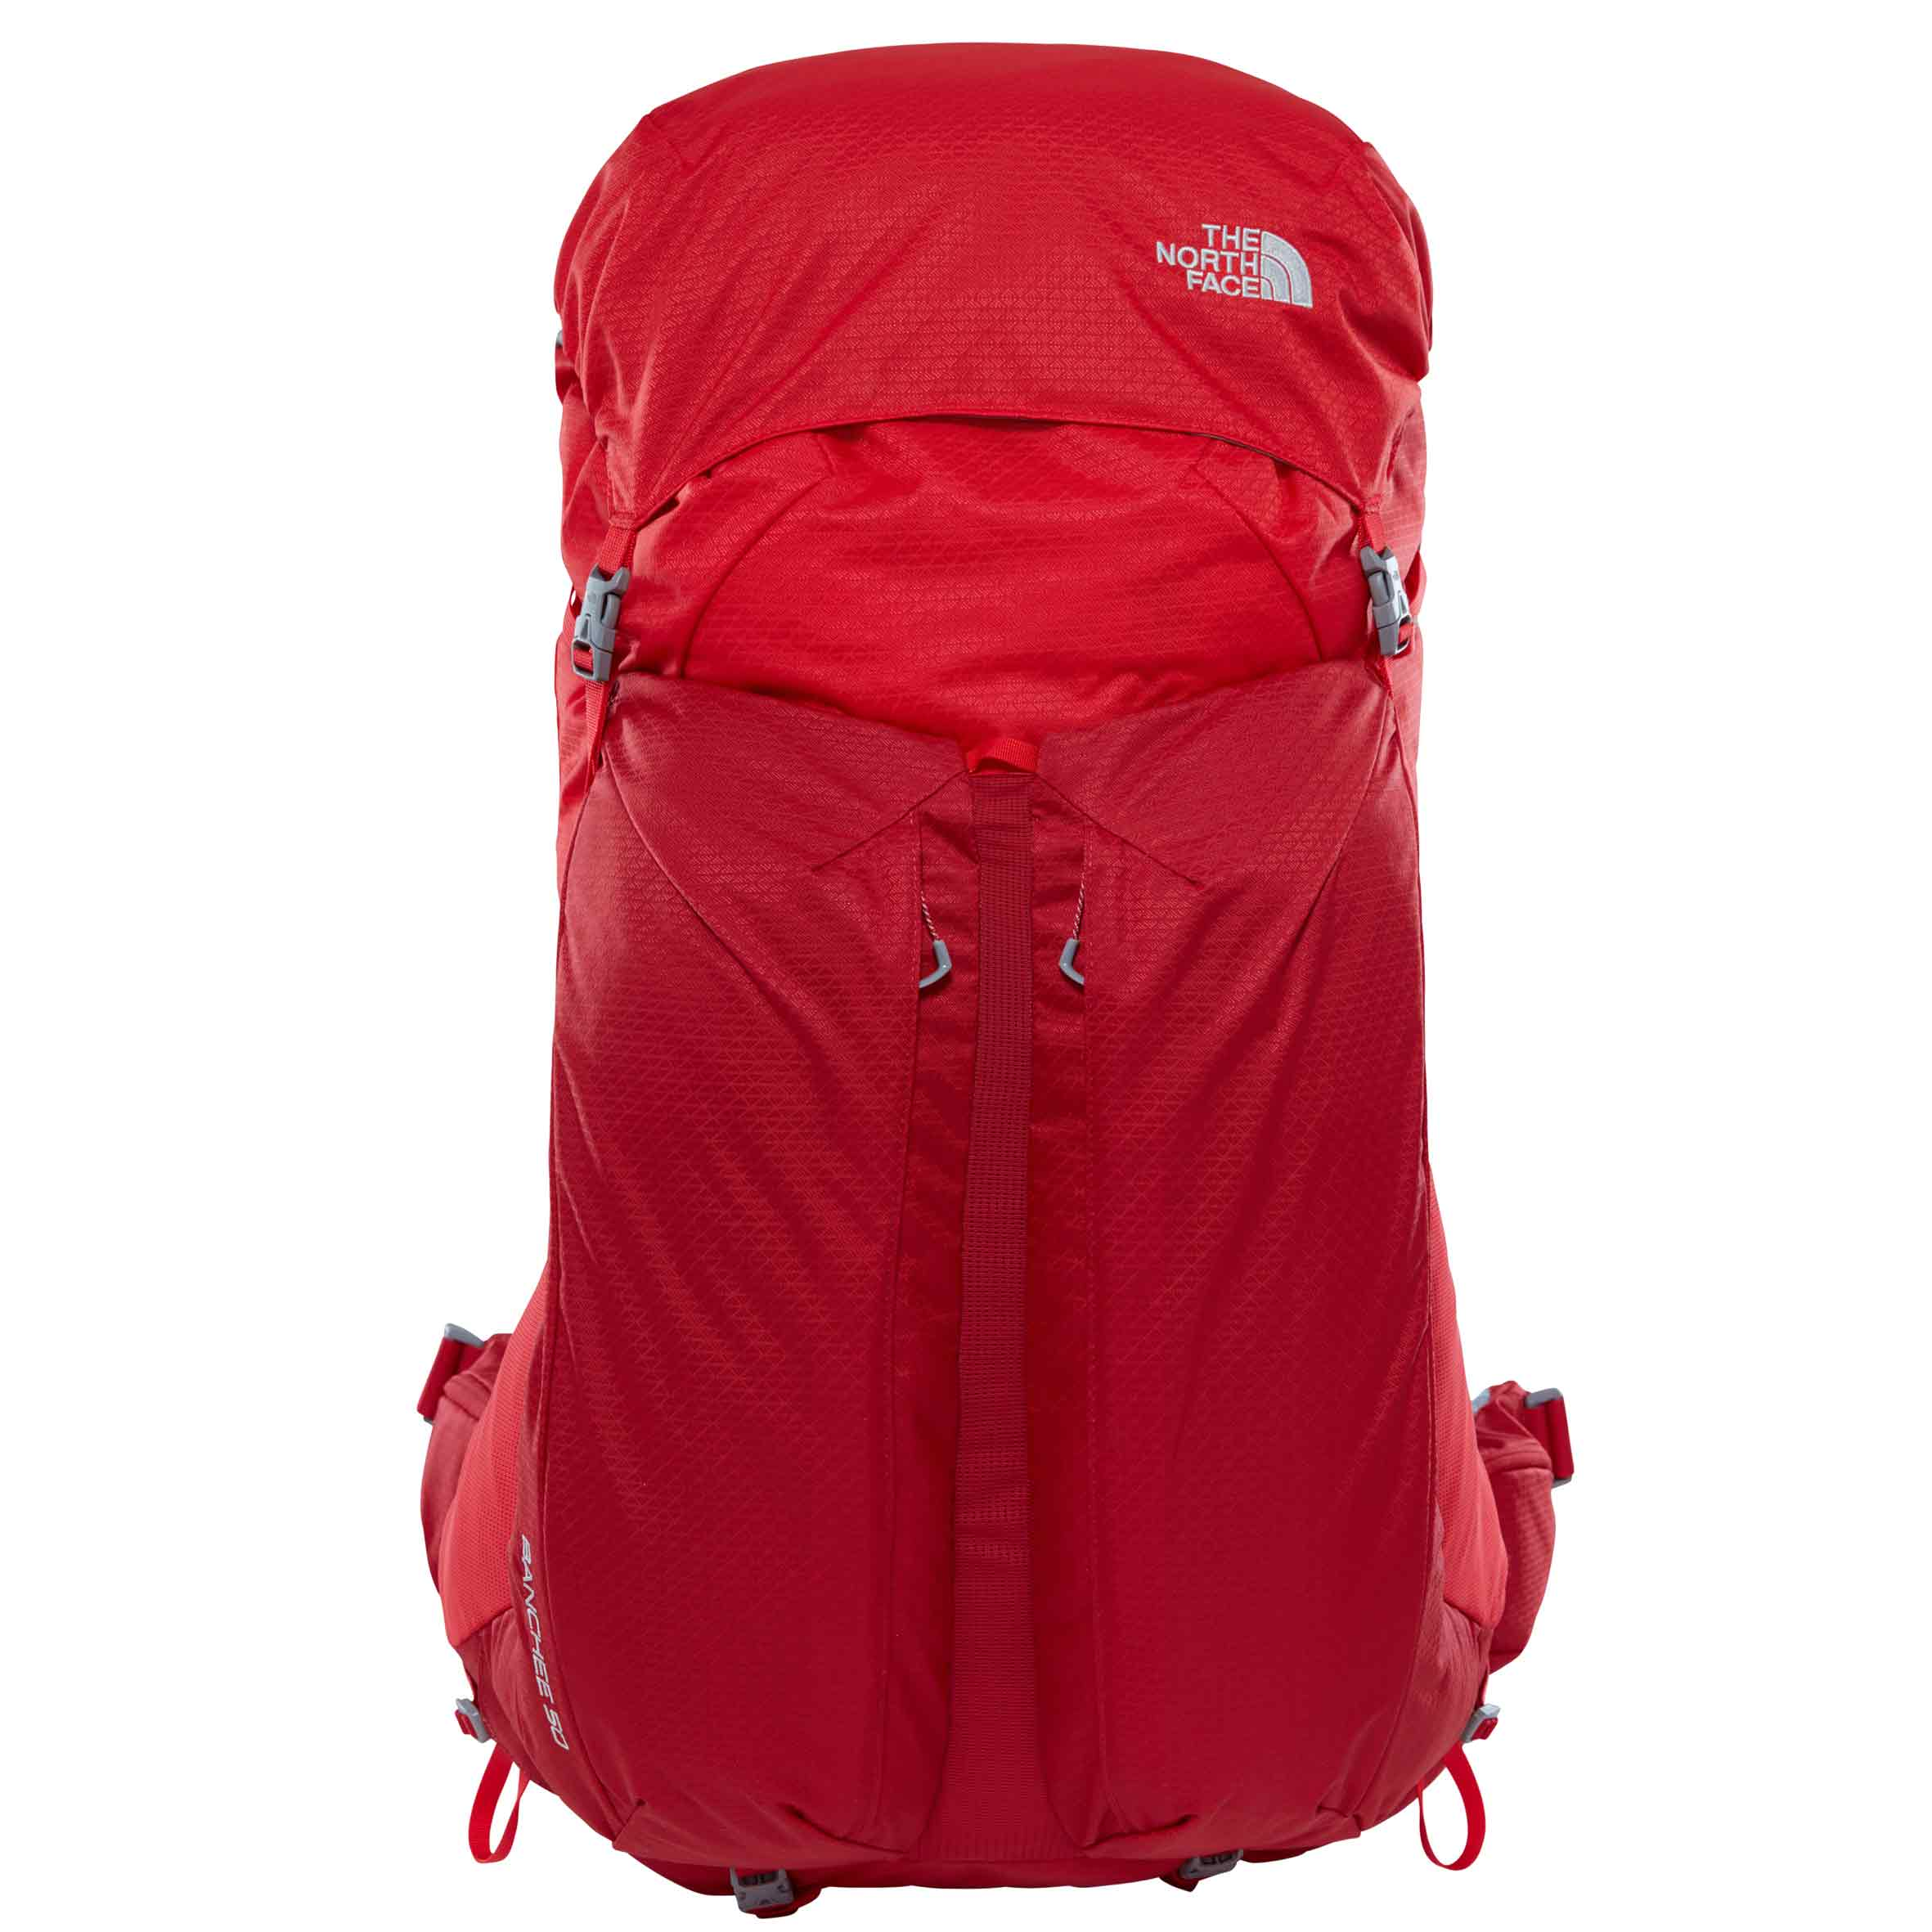 07d38e823c668 The North Face Trekking Rucksack L XL Banchee 50 rage red high risk red -  111